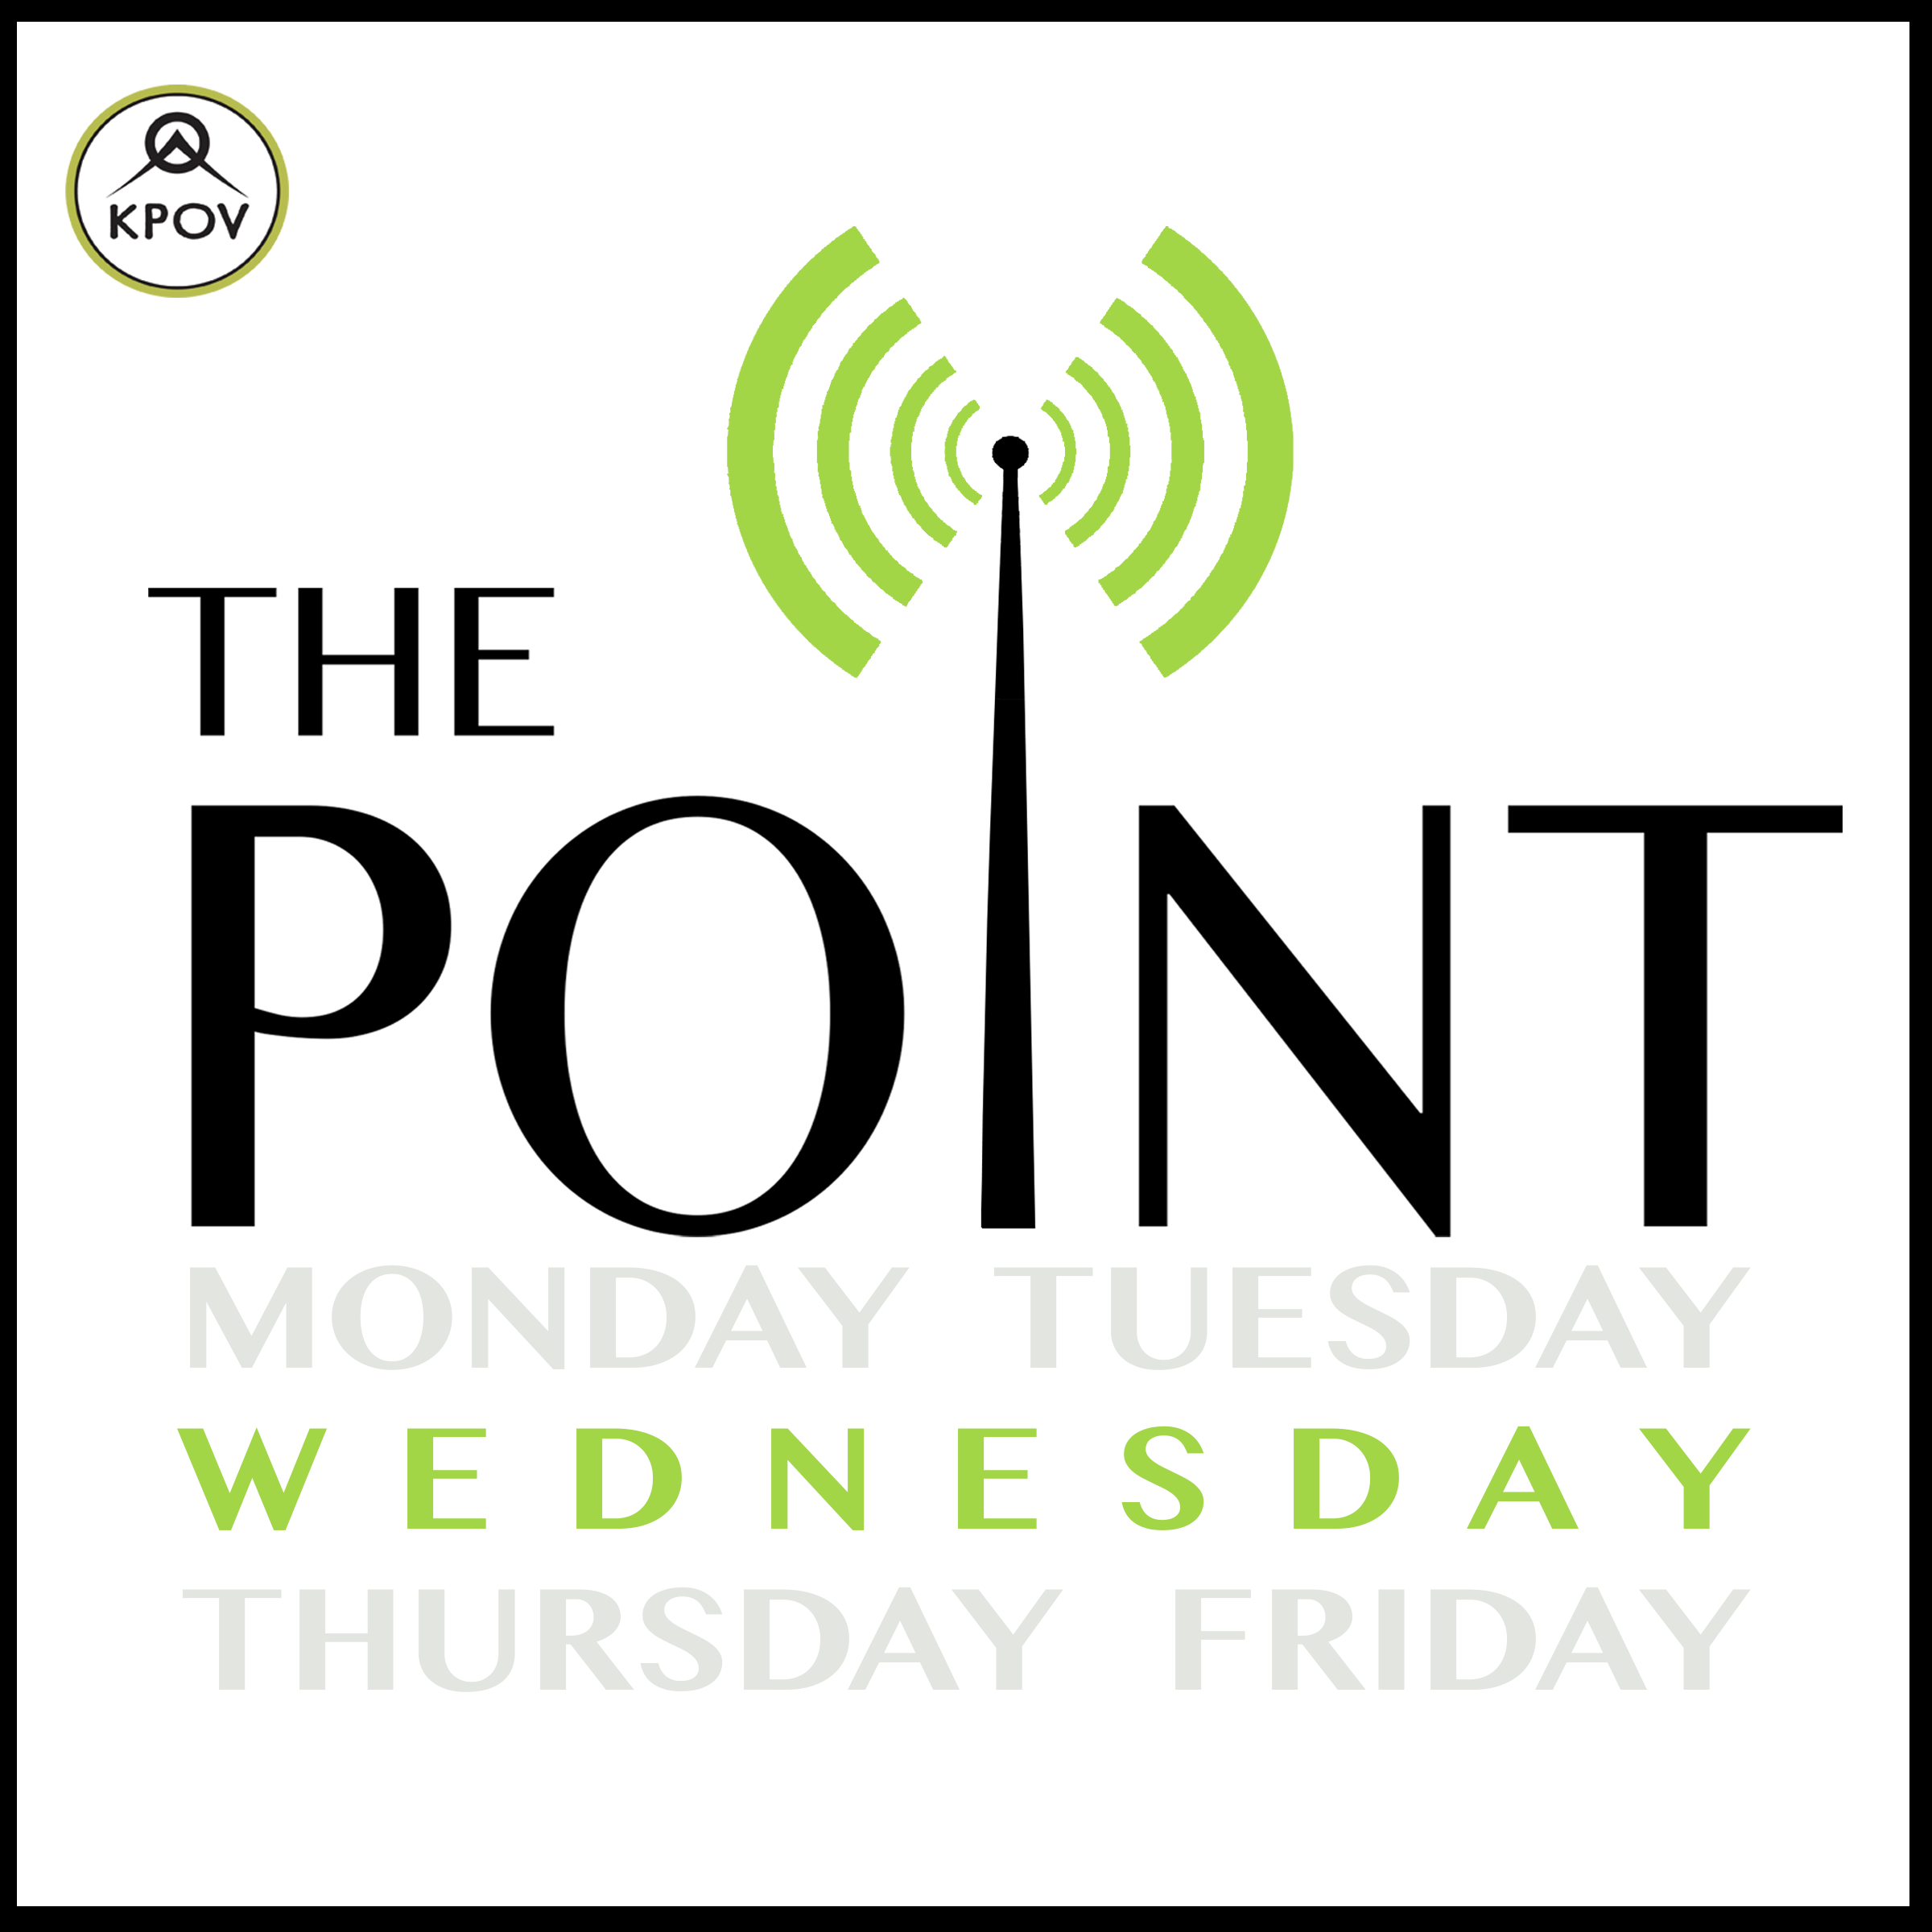 - The Point podcasts feature select segments and interviews from KPOV's weekday community affairs program. The Point is the local issues, arts, stories, and culture show for Bend, Redmond, Sisters, Prineville, everywhere in between and beyond – produced entirely by our Central Oregon community and KPOV.The Wednesday Point is hosted by Mary Ann Hart and Louise Kaplan.